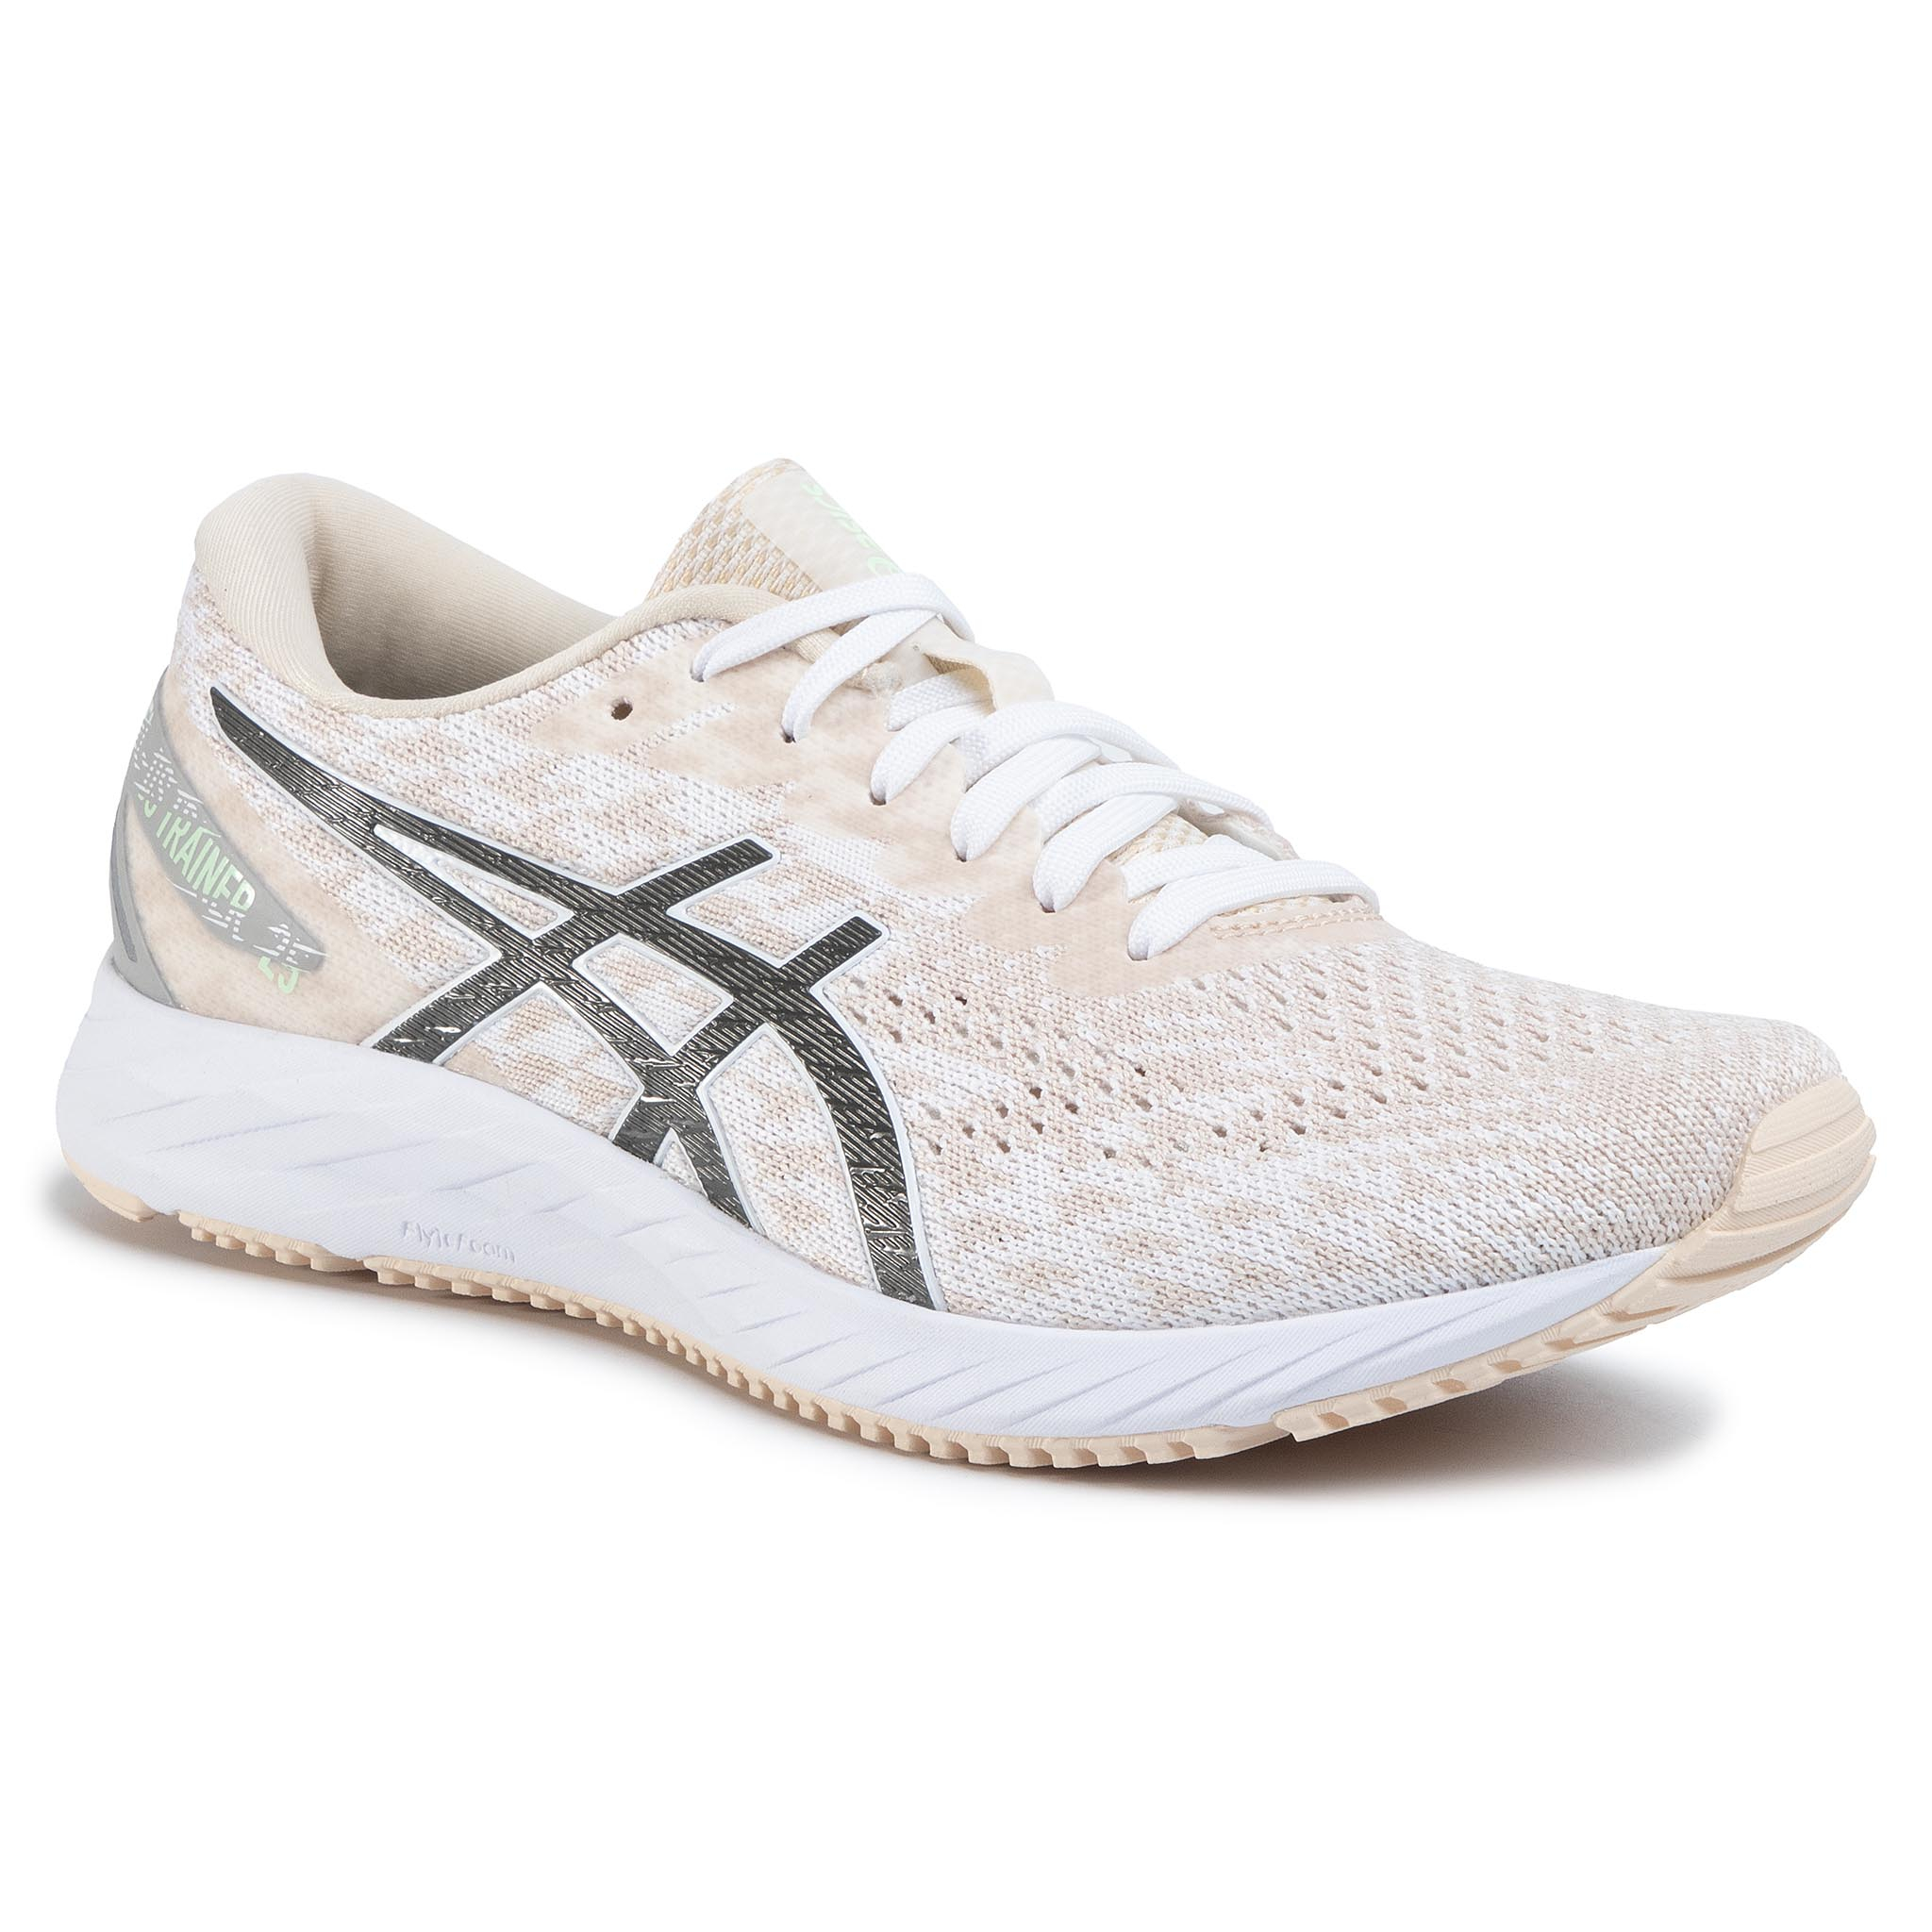 Pantofi ASICS - Gel-Ds Trainer 25 1012A579 White/Gunmetal 100